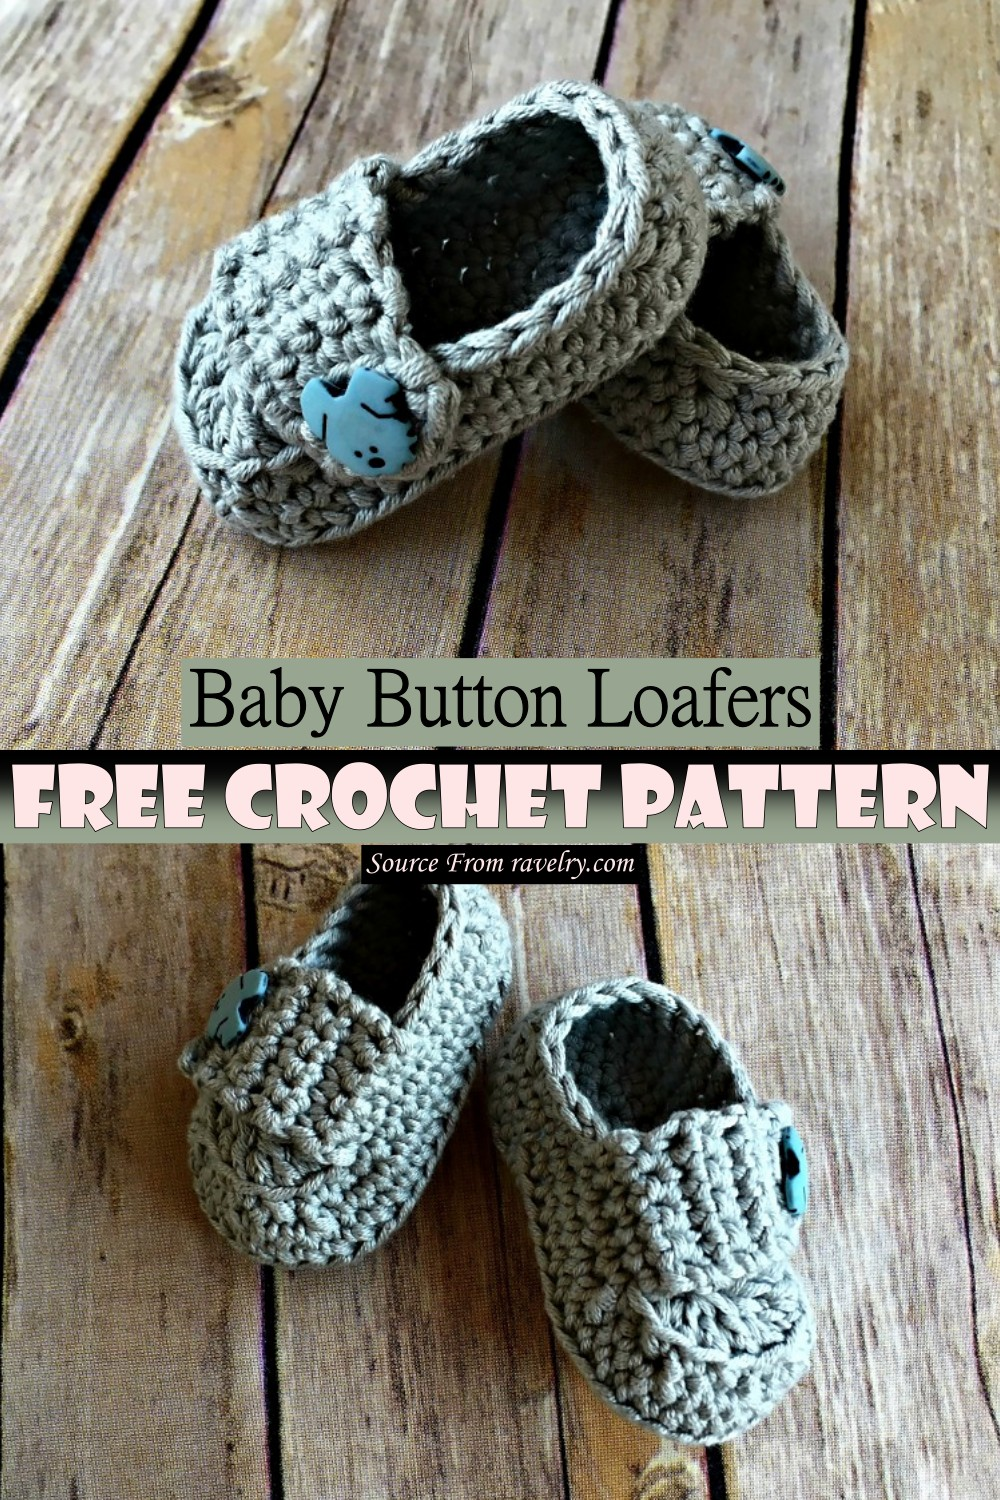 Crochet Baby Button Loafers Pattern